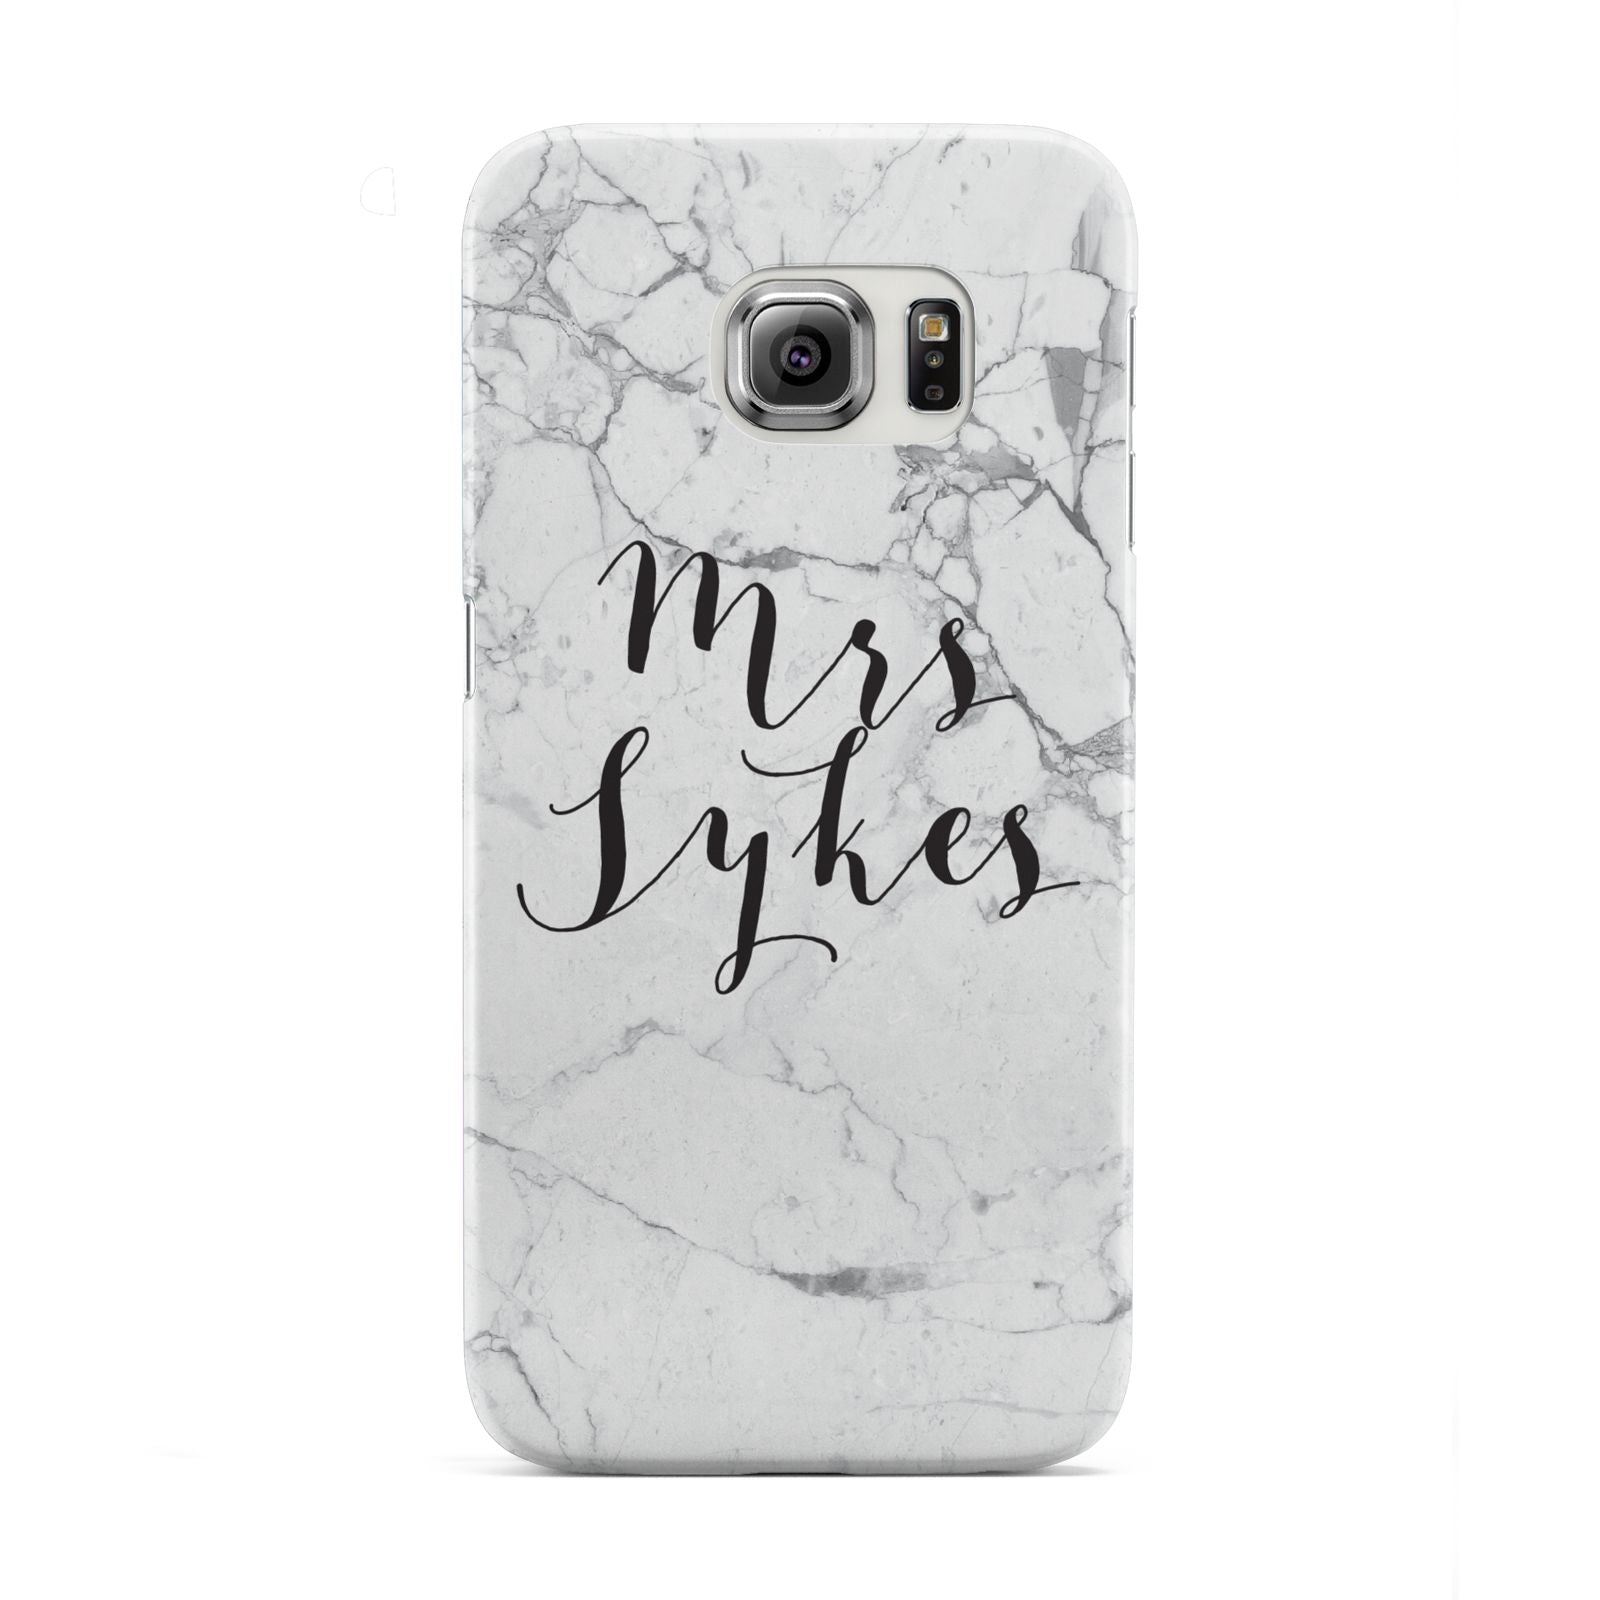 Surname Personalised Marble Samsung Galaxy S6 Edge Case